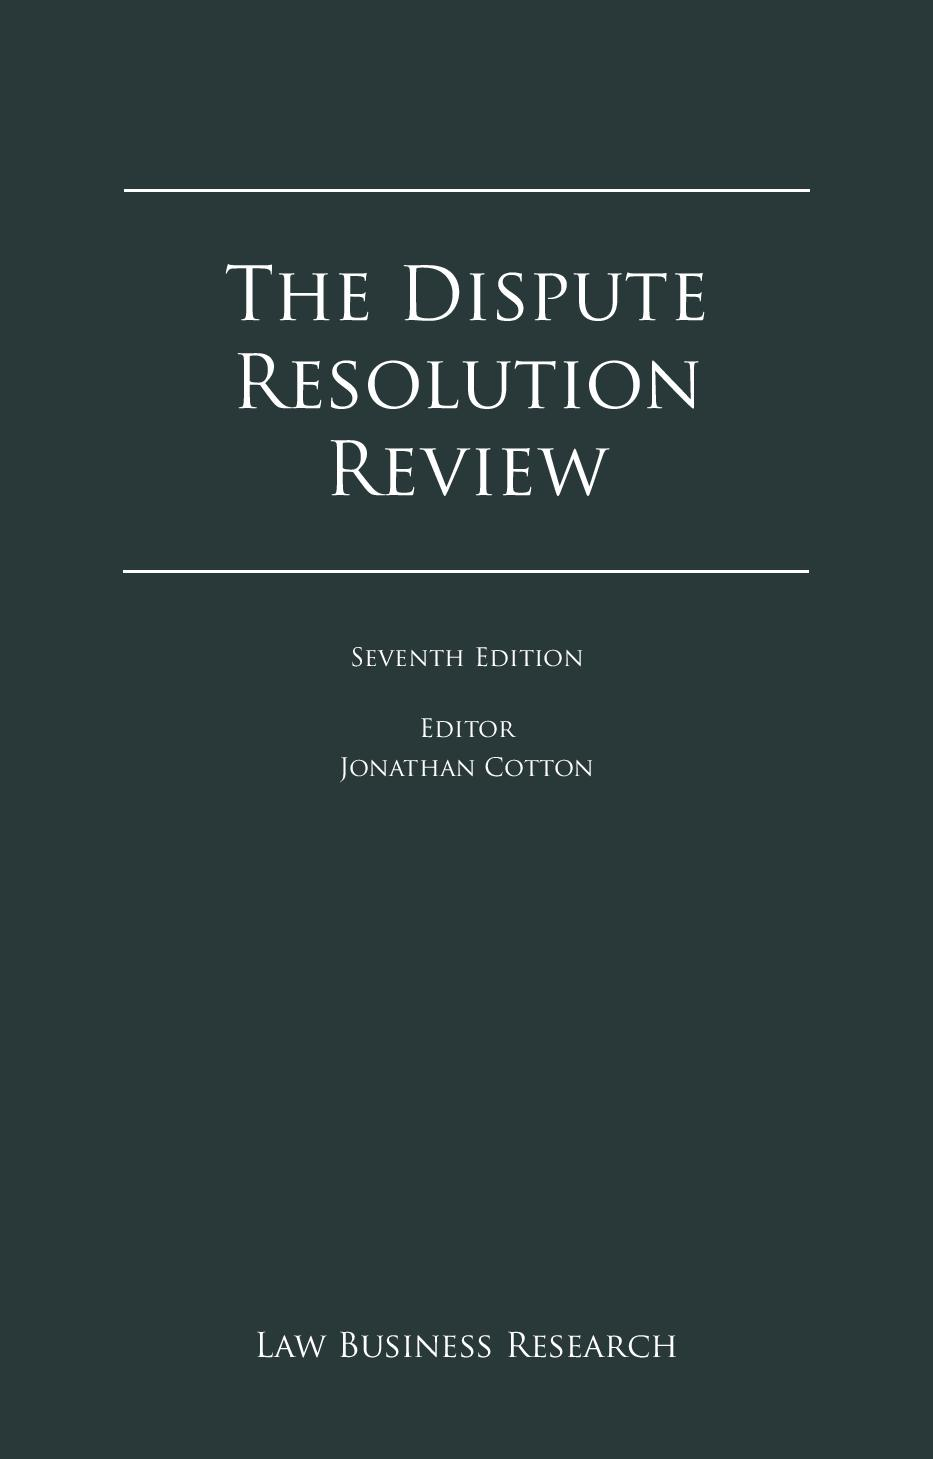 The Dispute Resolution Review-Cyprus Chapter 2015